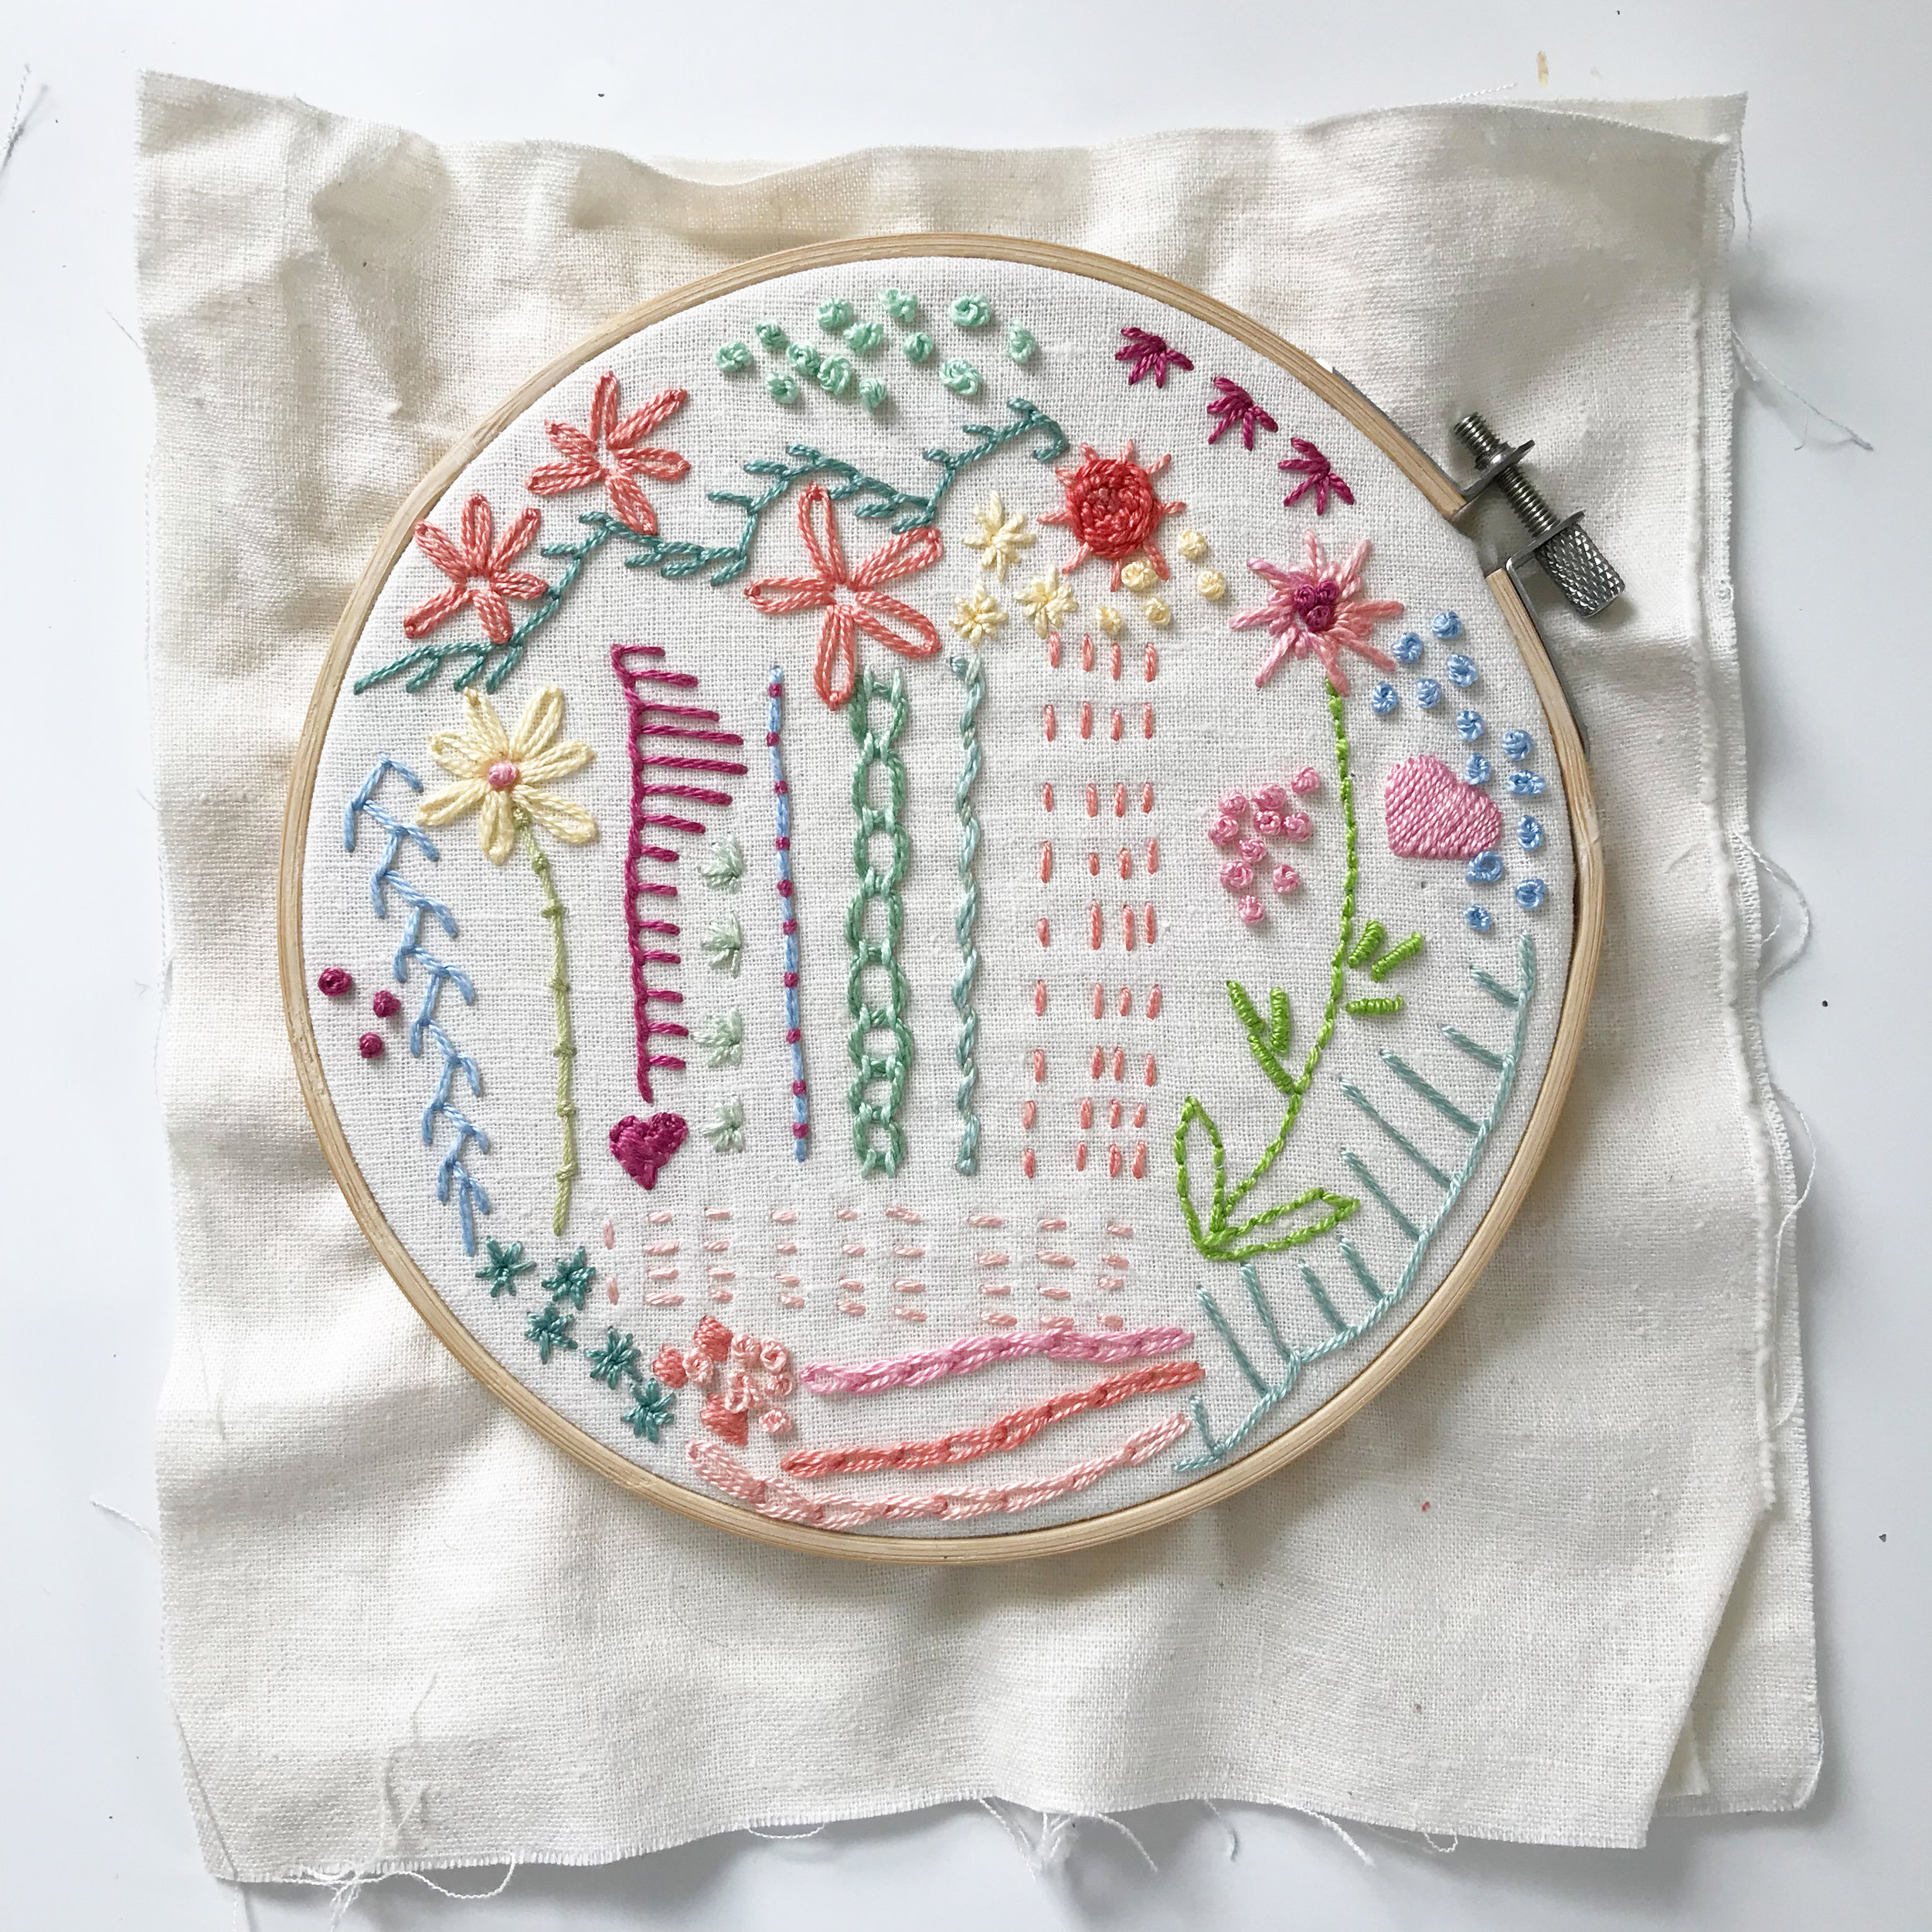 A Sampler of Embroidery Stitches I Created Recently